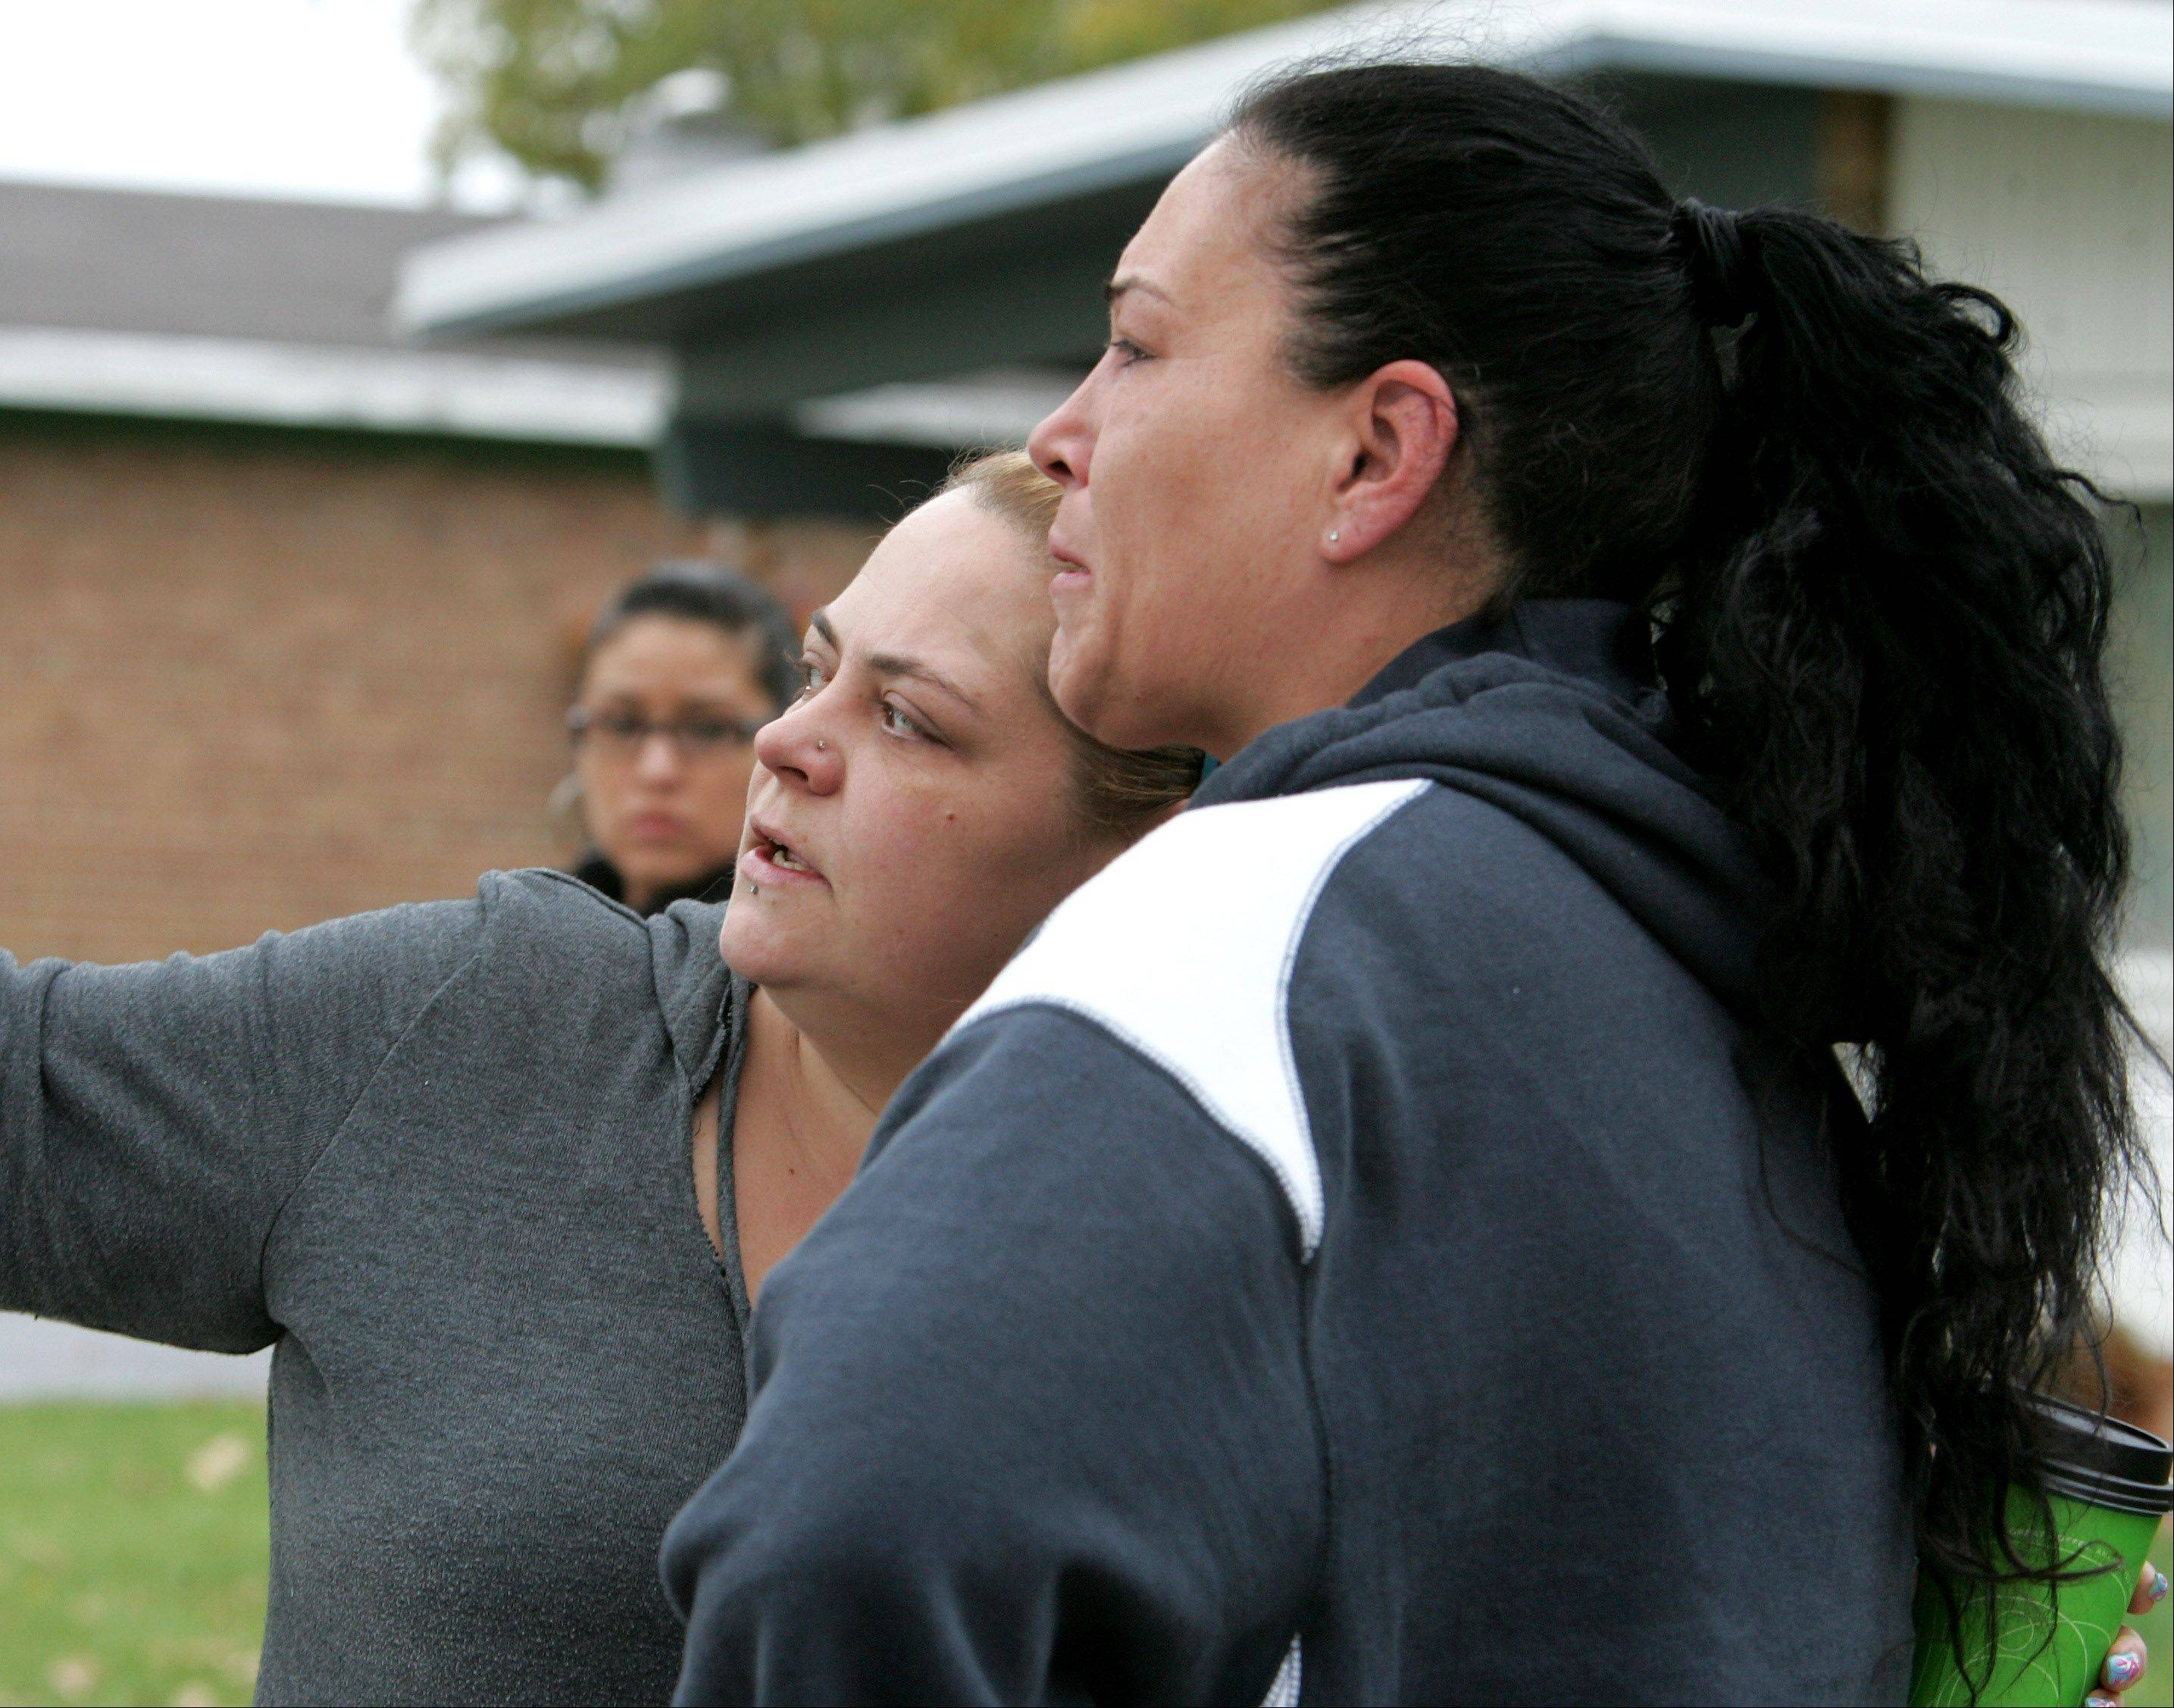 Anna Carrillo, left, and Anna Valdez, wait anxiously for news about their children at Indian Trail Junior High as it was on lockdown. Authorities lifted the lockdown after several hours saying there was no danger to students.